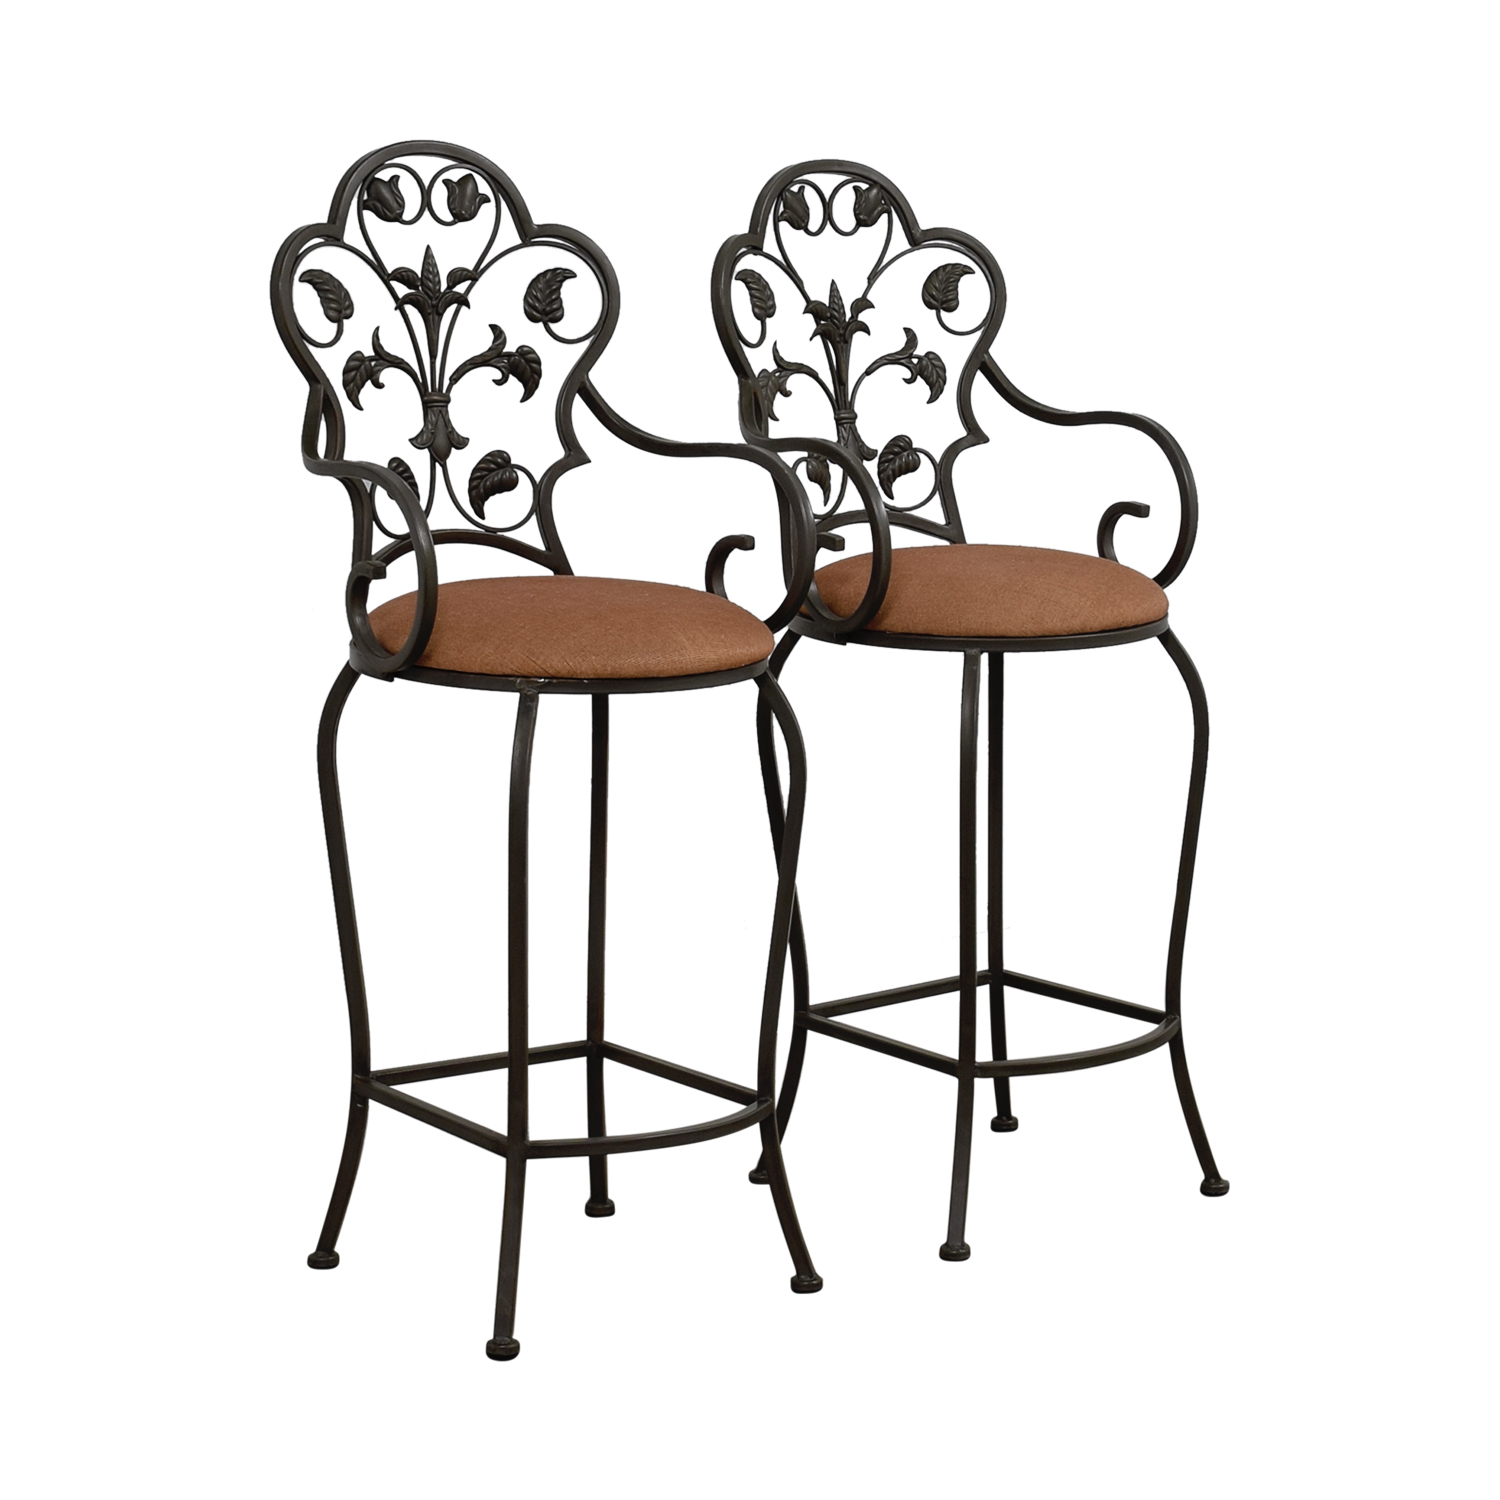 Awe Inspiring 70 Off Scrolled Metal Folding Back Bar Stools Chairs Alphanode Cool Chair Designs And Ideas Alphanodeonline